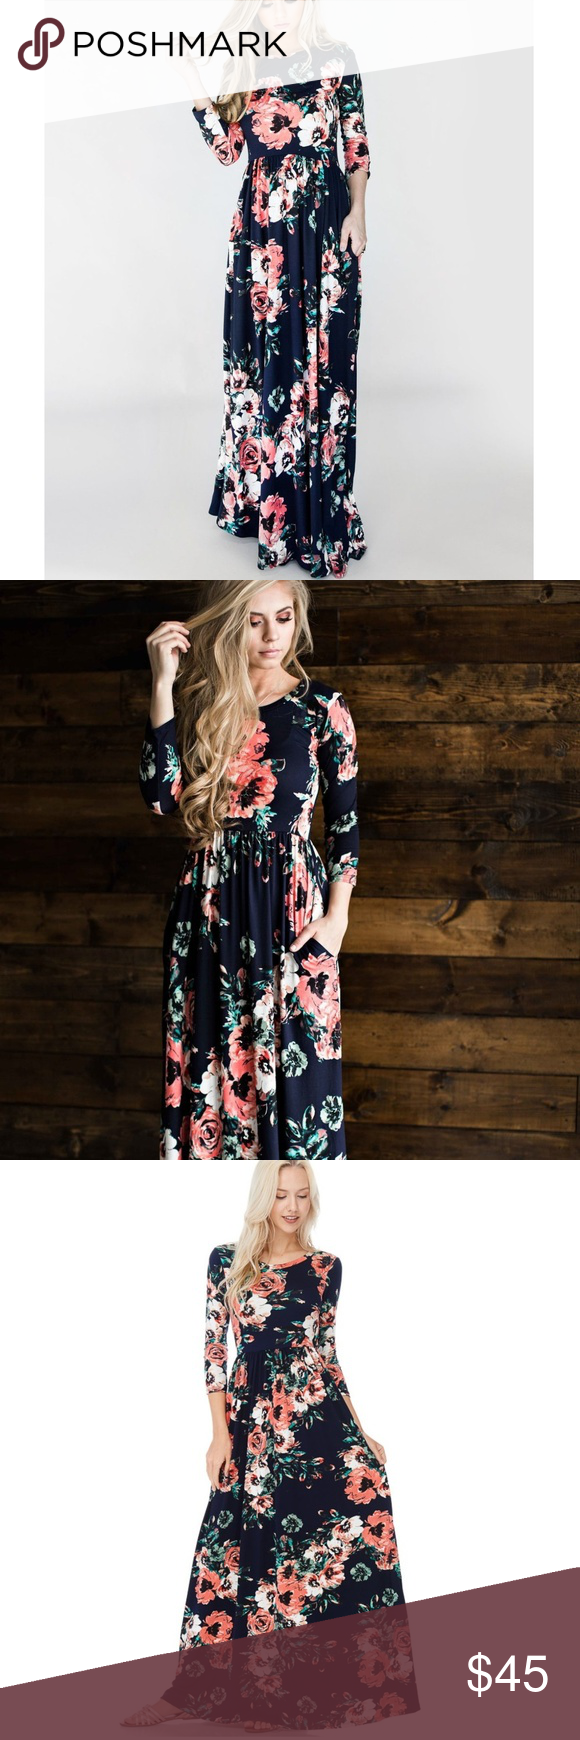 57a61ce8940 NWT Reborn J Watercolor Floral Maxi Dress Size S Genuine Reborn J at a  great price